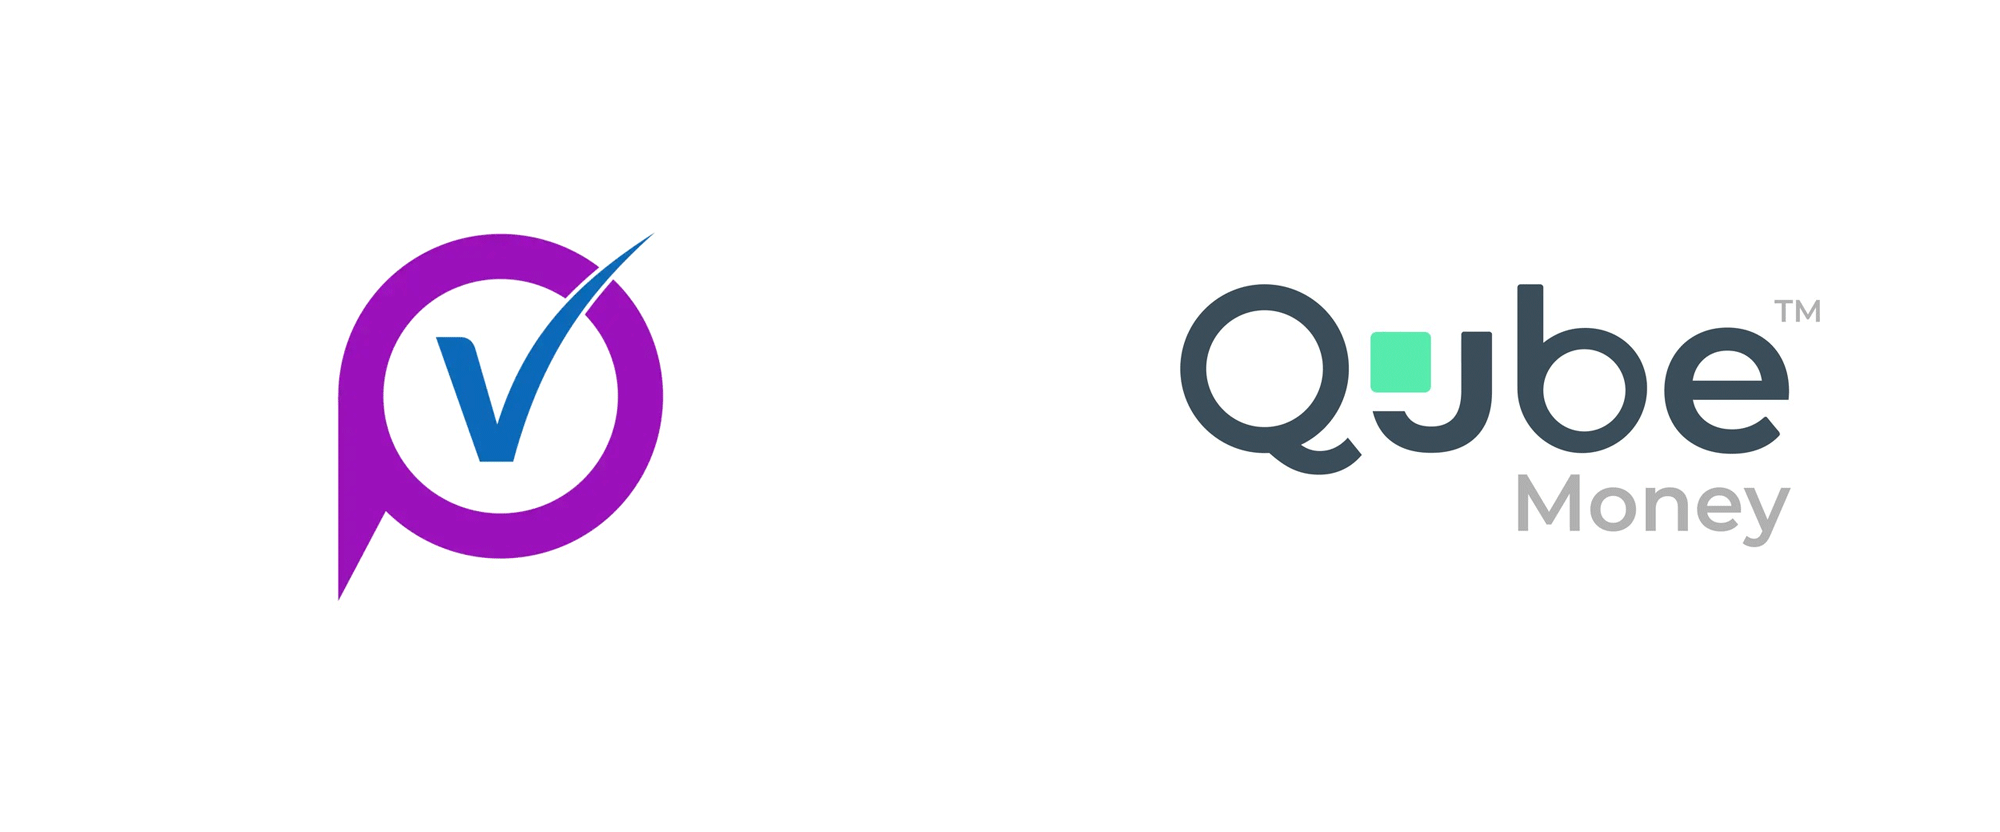 New Name and Logo for Qube Money